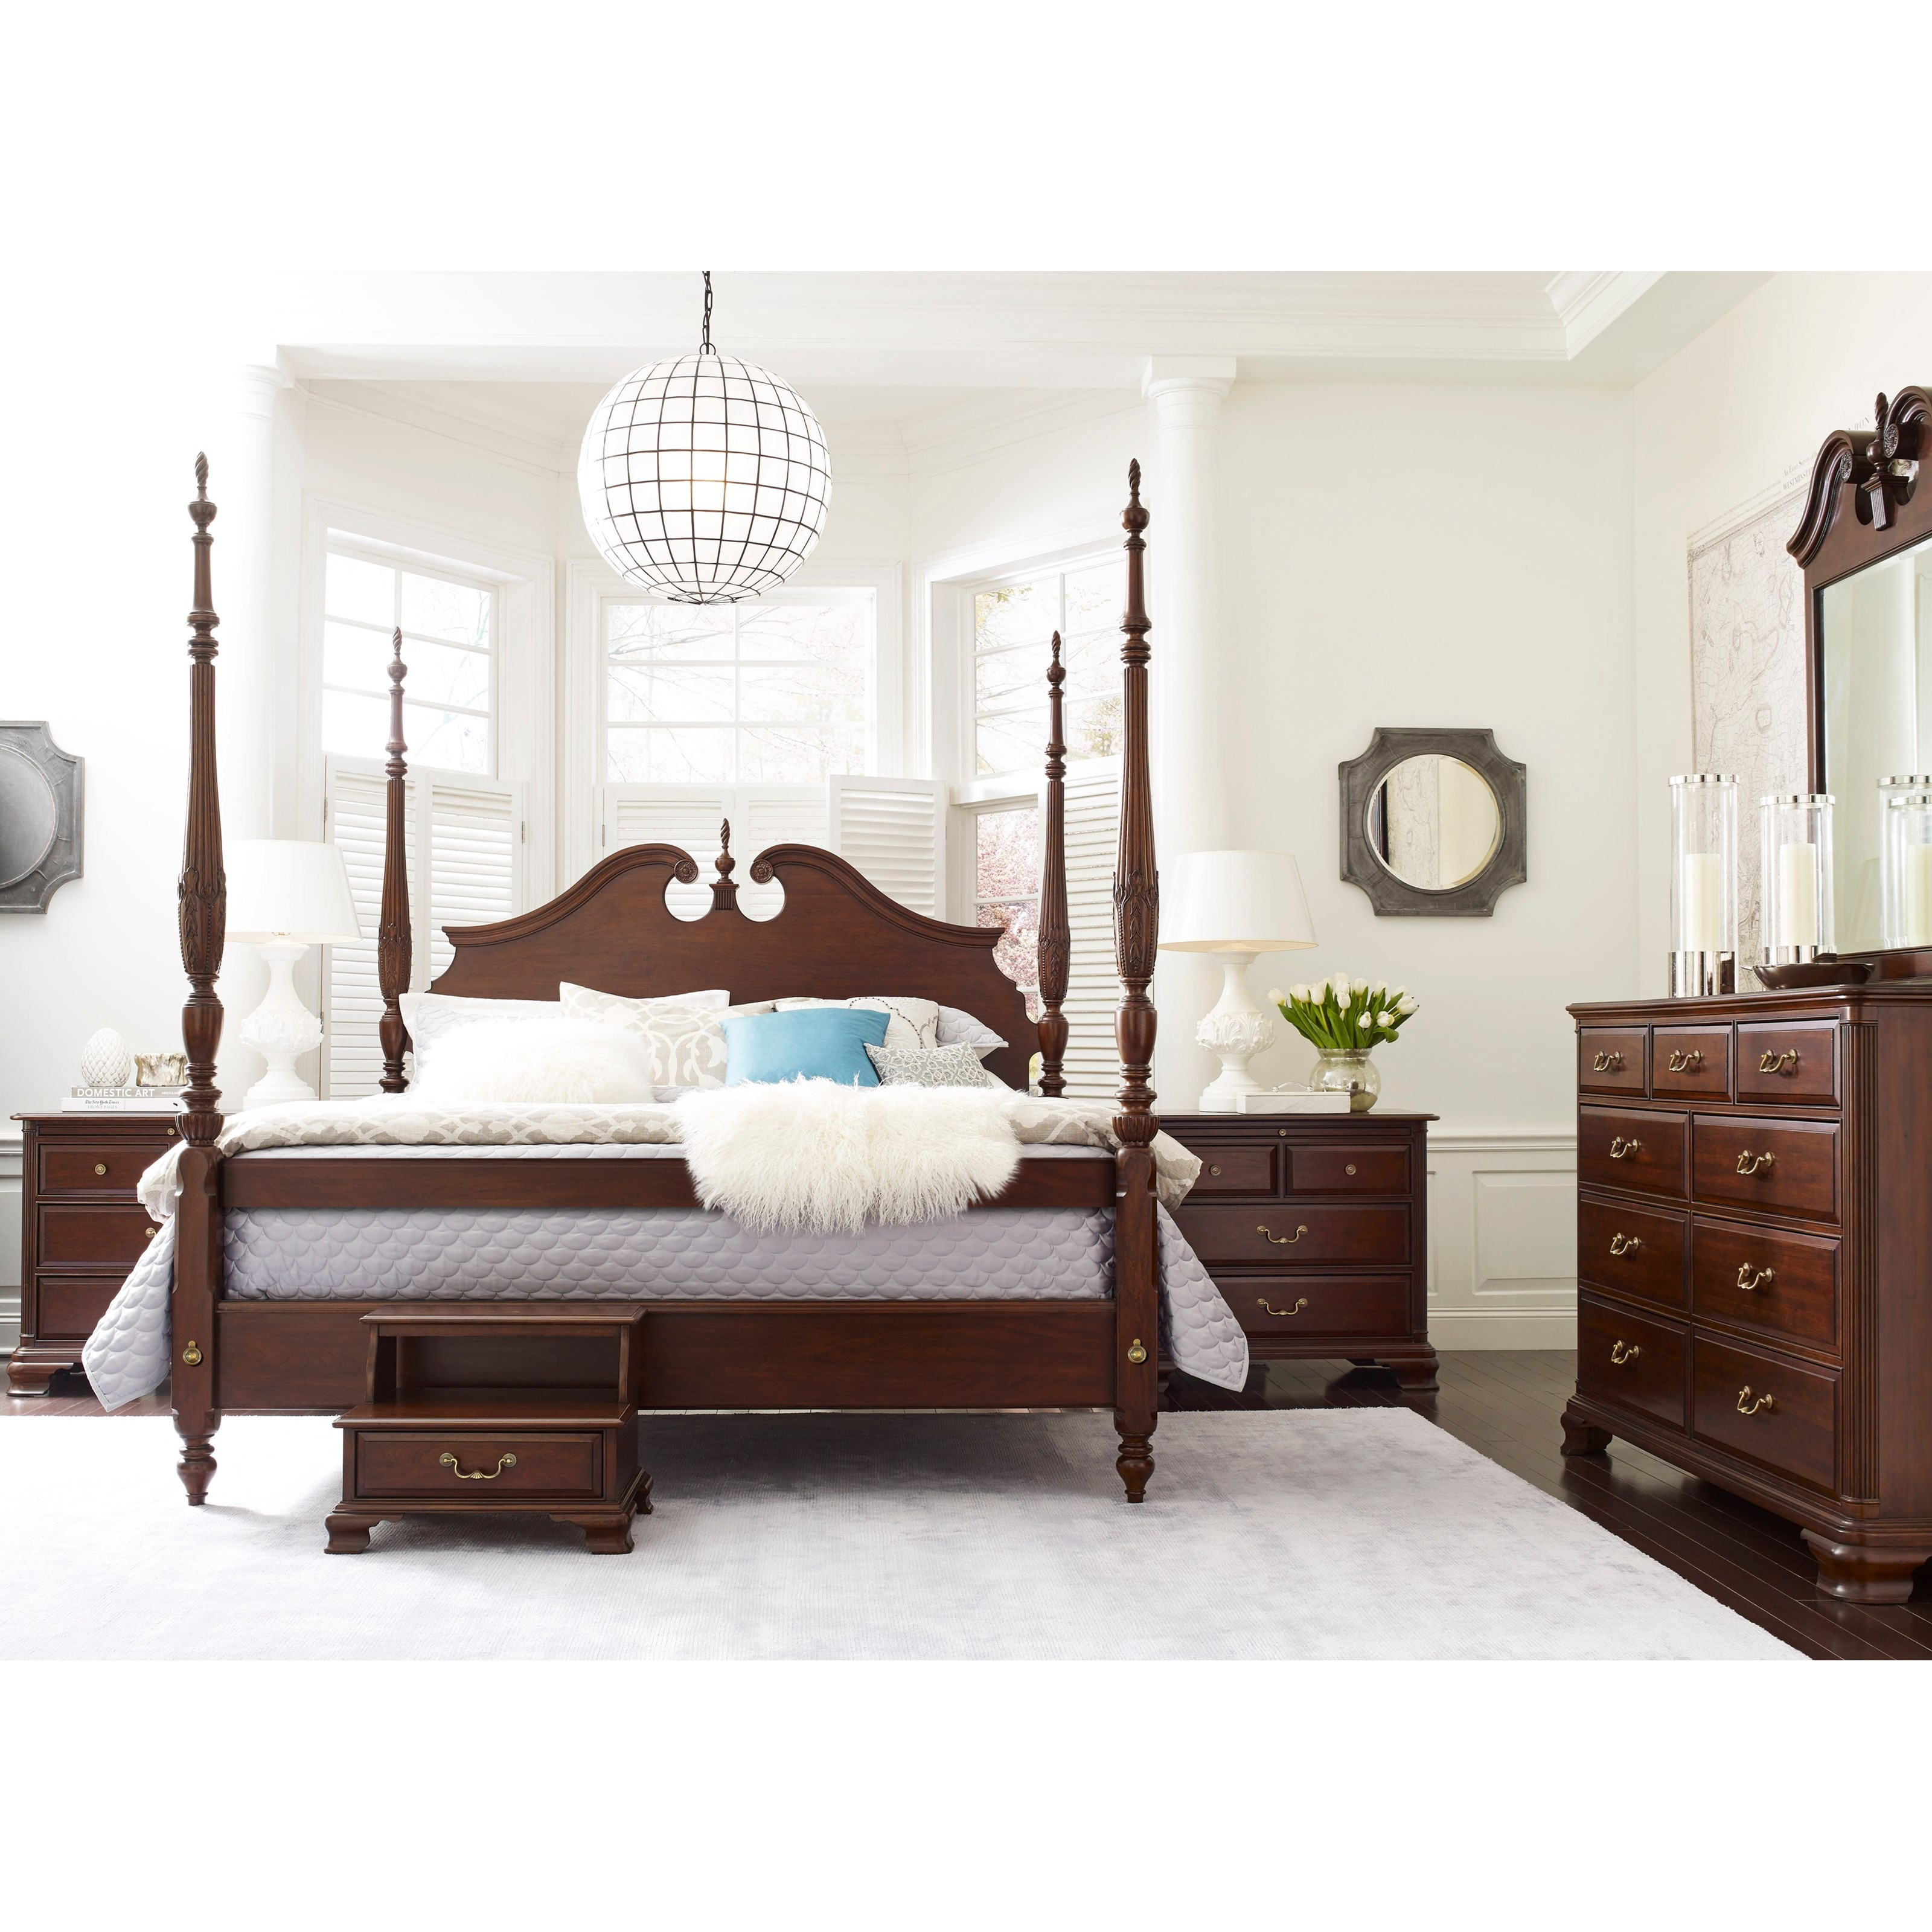 Kincaid Furniture Hadleigh King Bedroom Group - Item Number: 607 K Bedroom Group 2